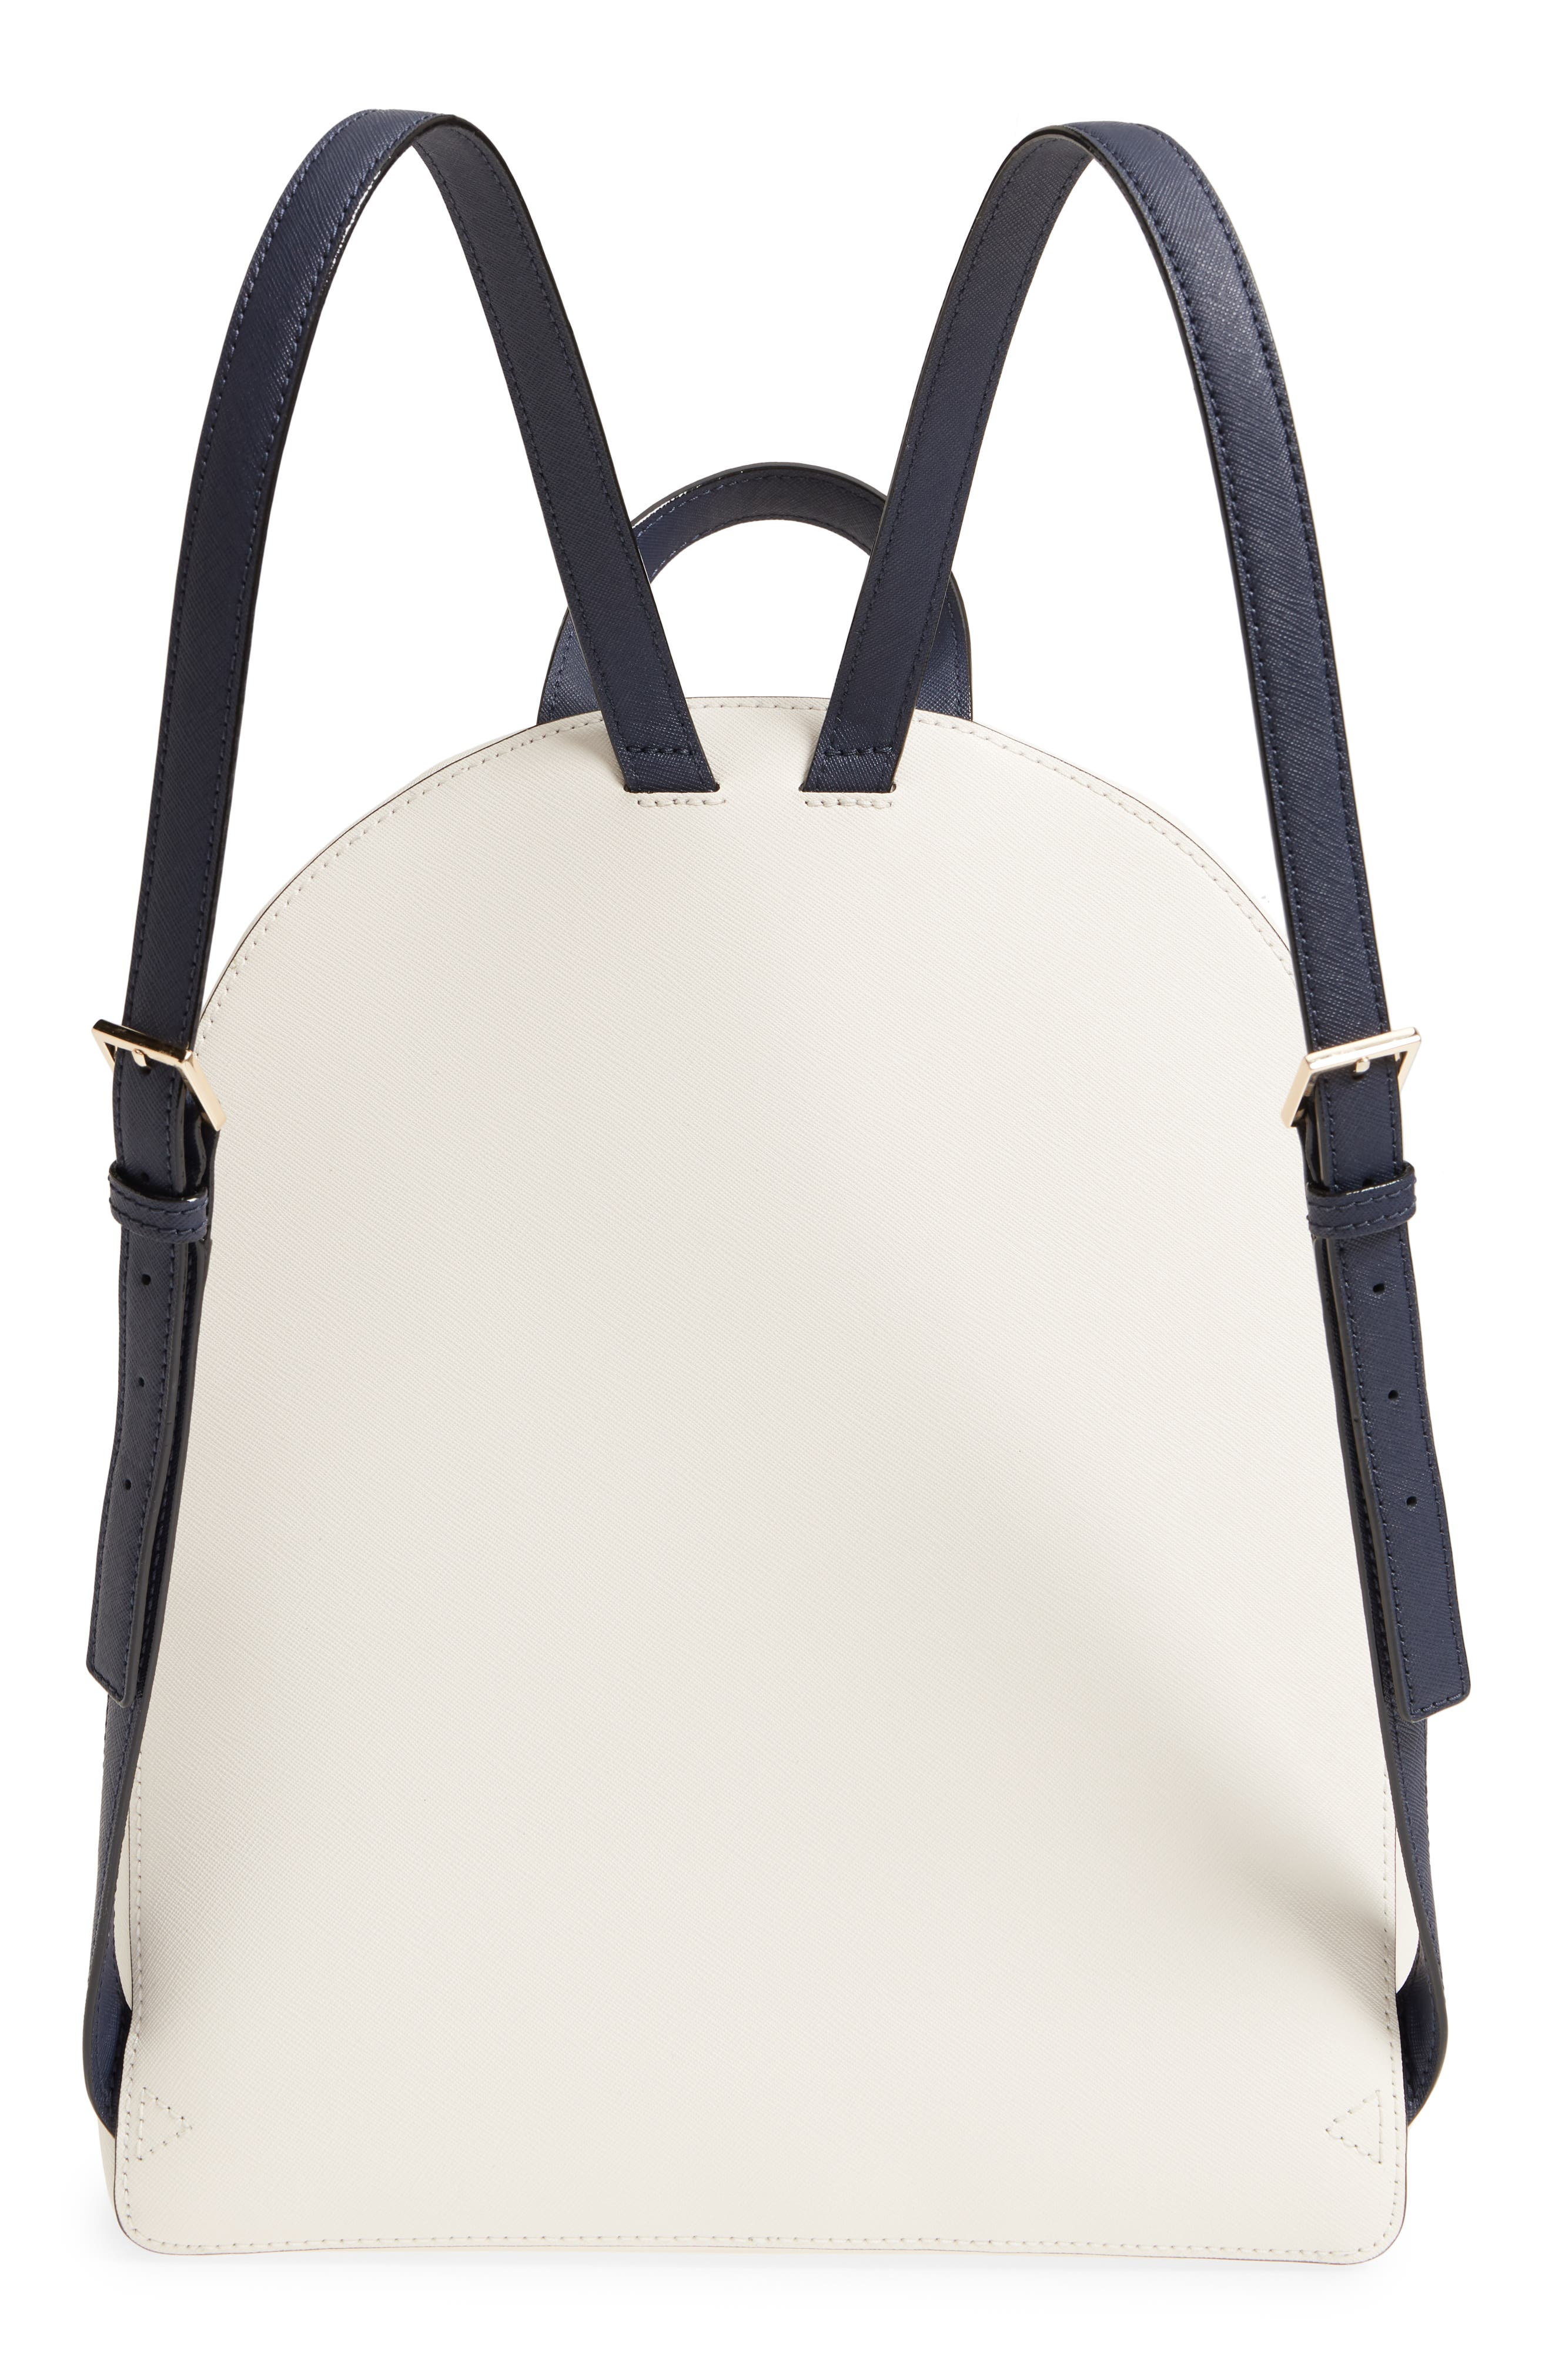 cameron street – hartley leather backpack,                             Alternate thumbnail 3, color,                             900